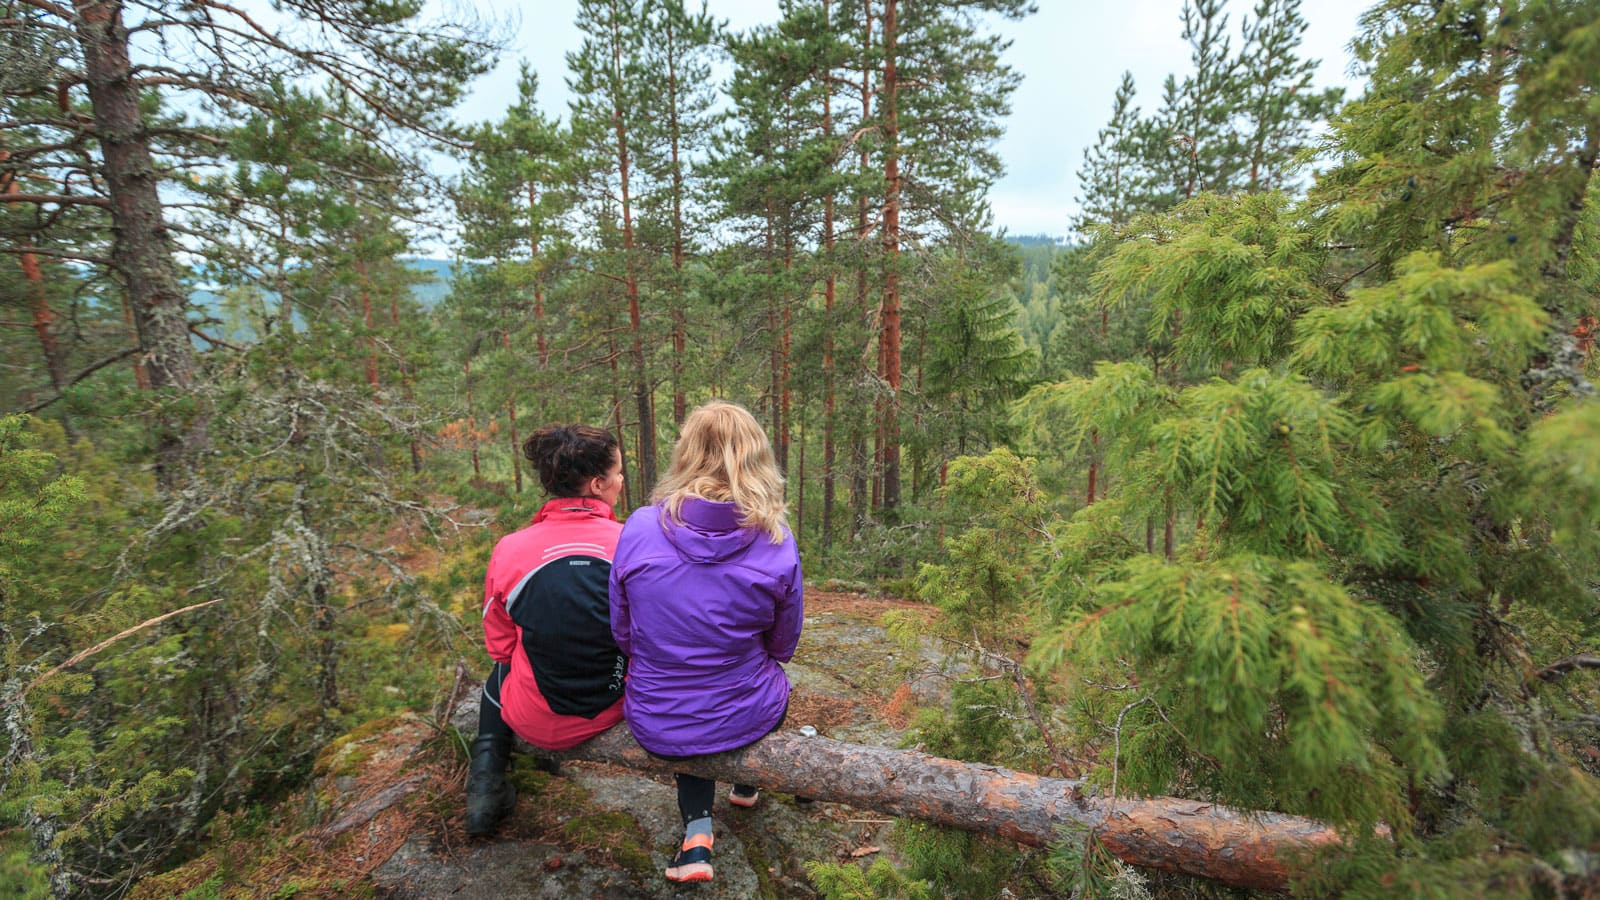 Two persons sitting in forest.